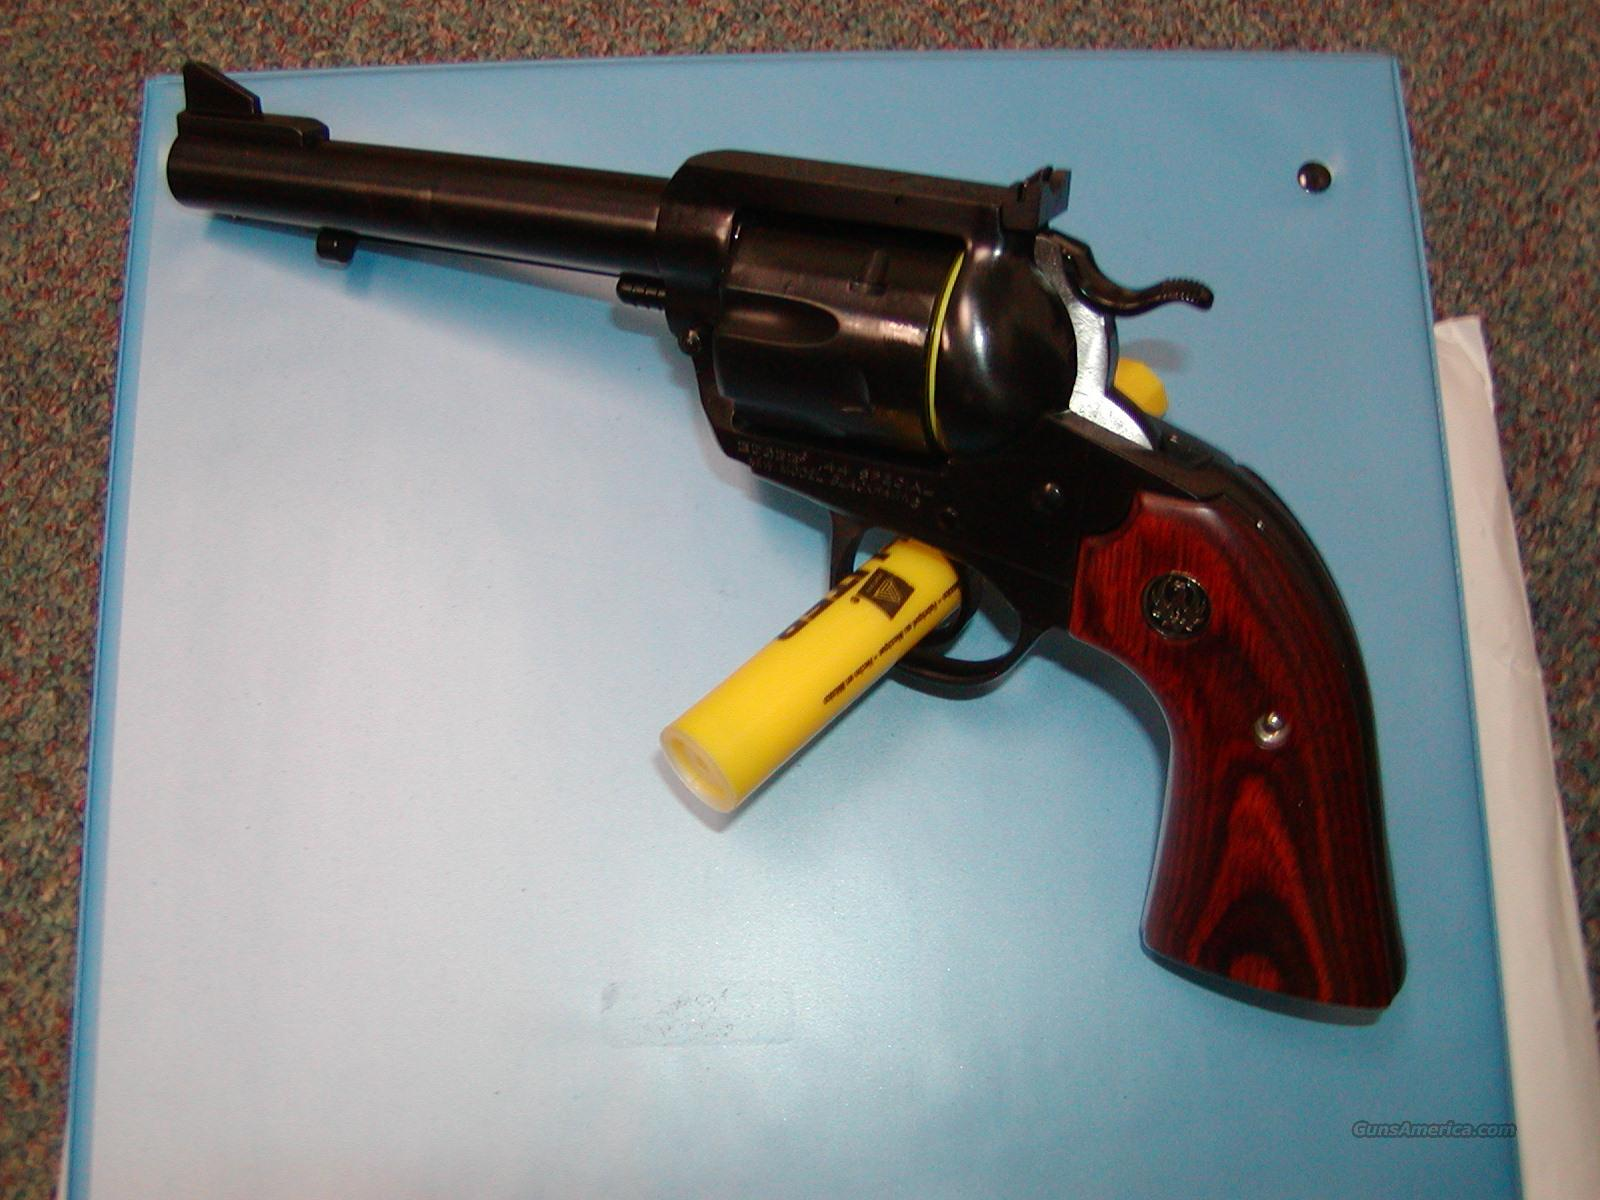 Ruger .44 Special Bisley Blackhawk Flattop   Guns > Pistols > Ruger Single Action Revolvers > Blackhawk Type